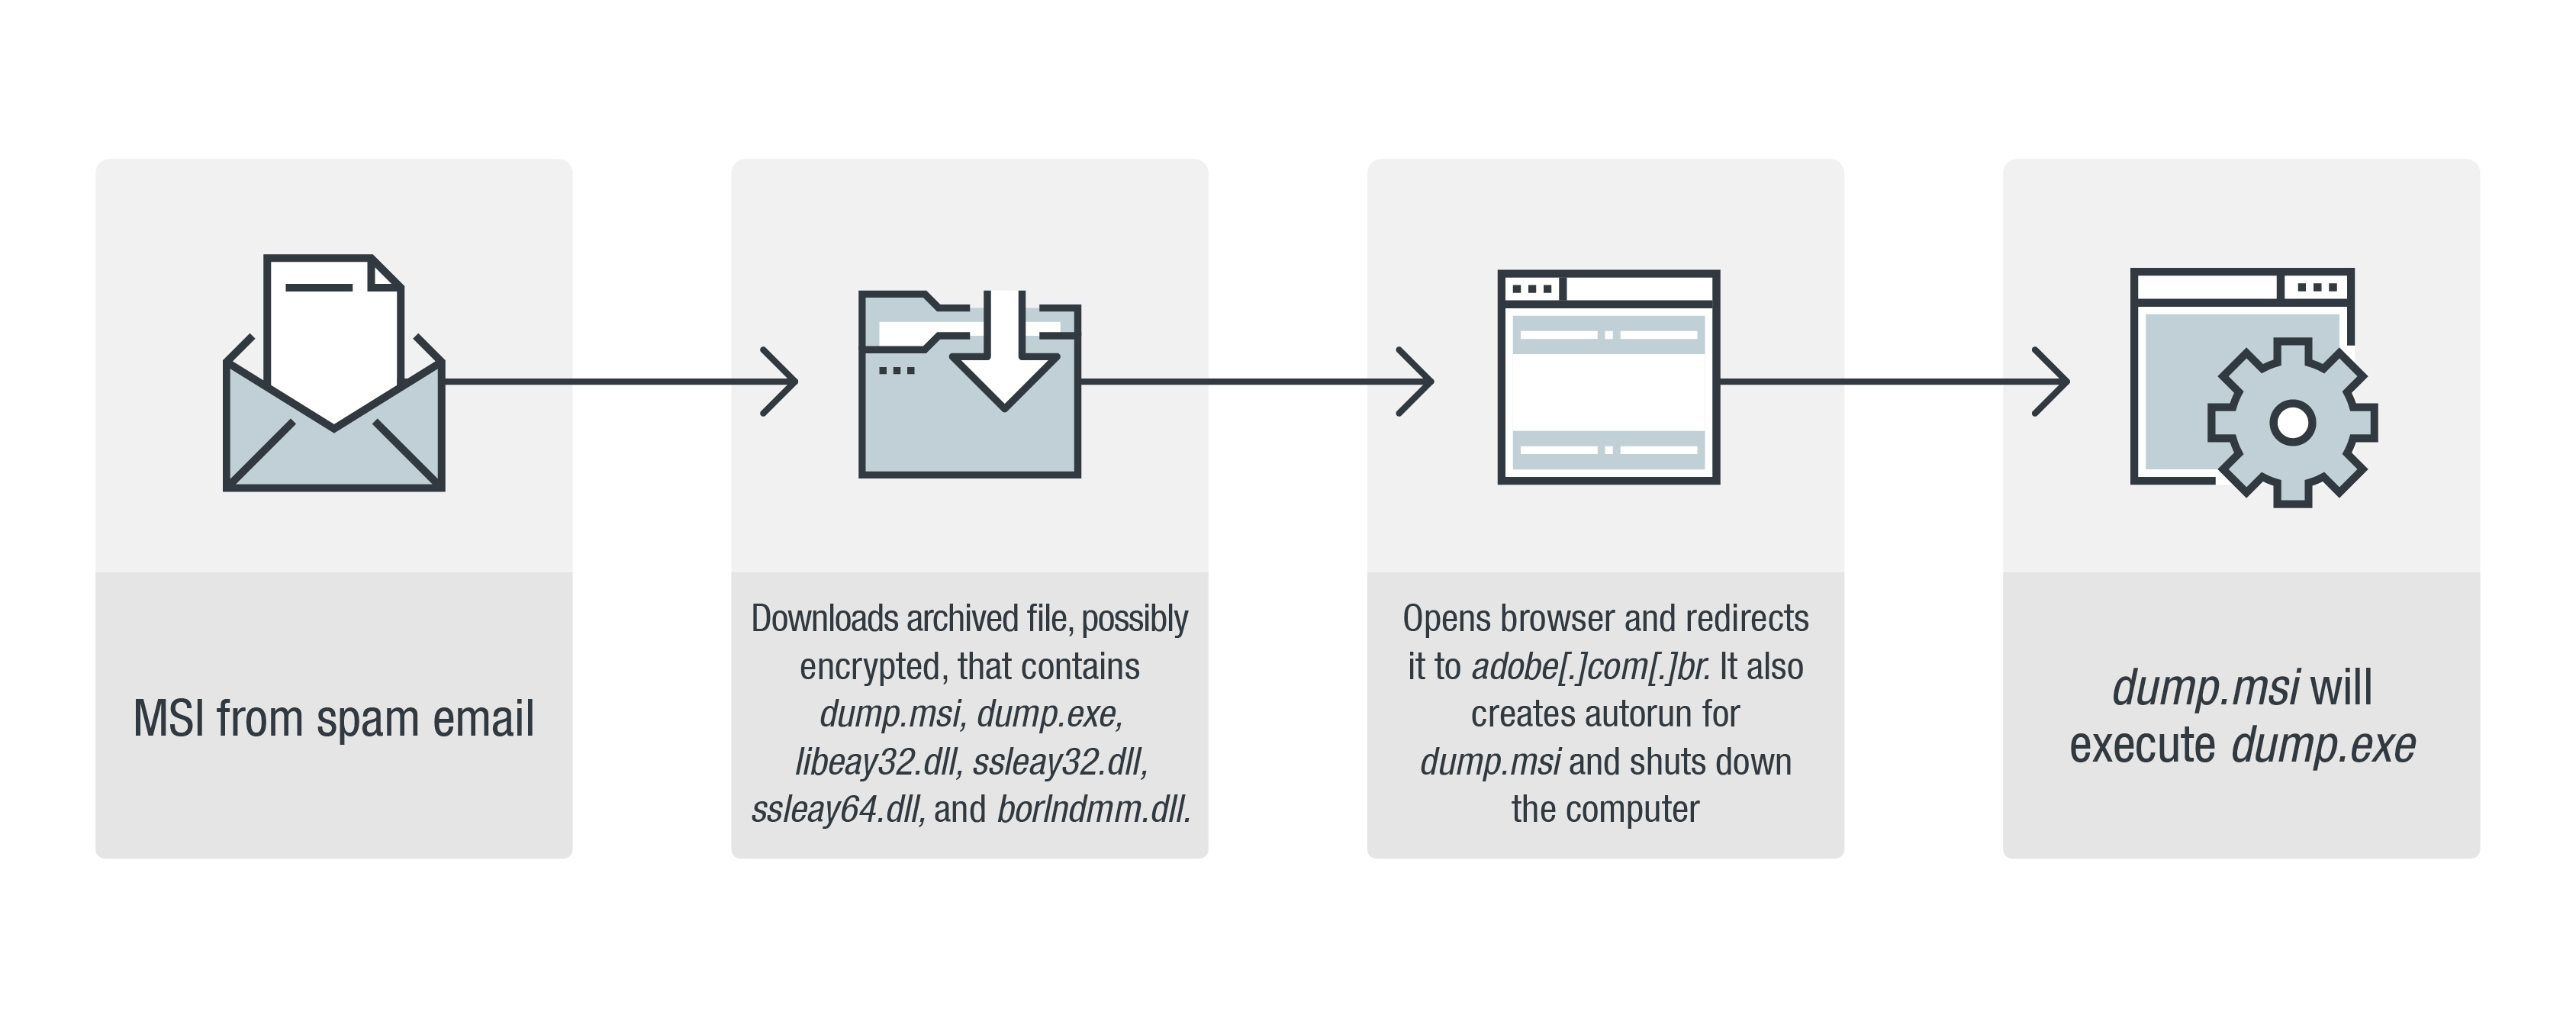 Figure 11. Malicious routine of the MSI in spammed email